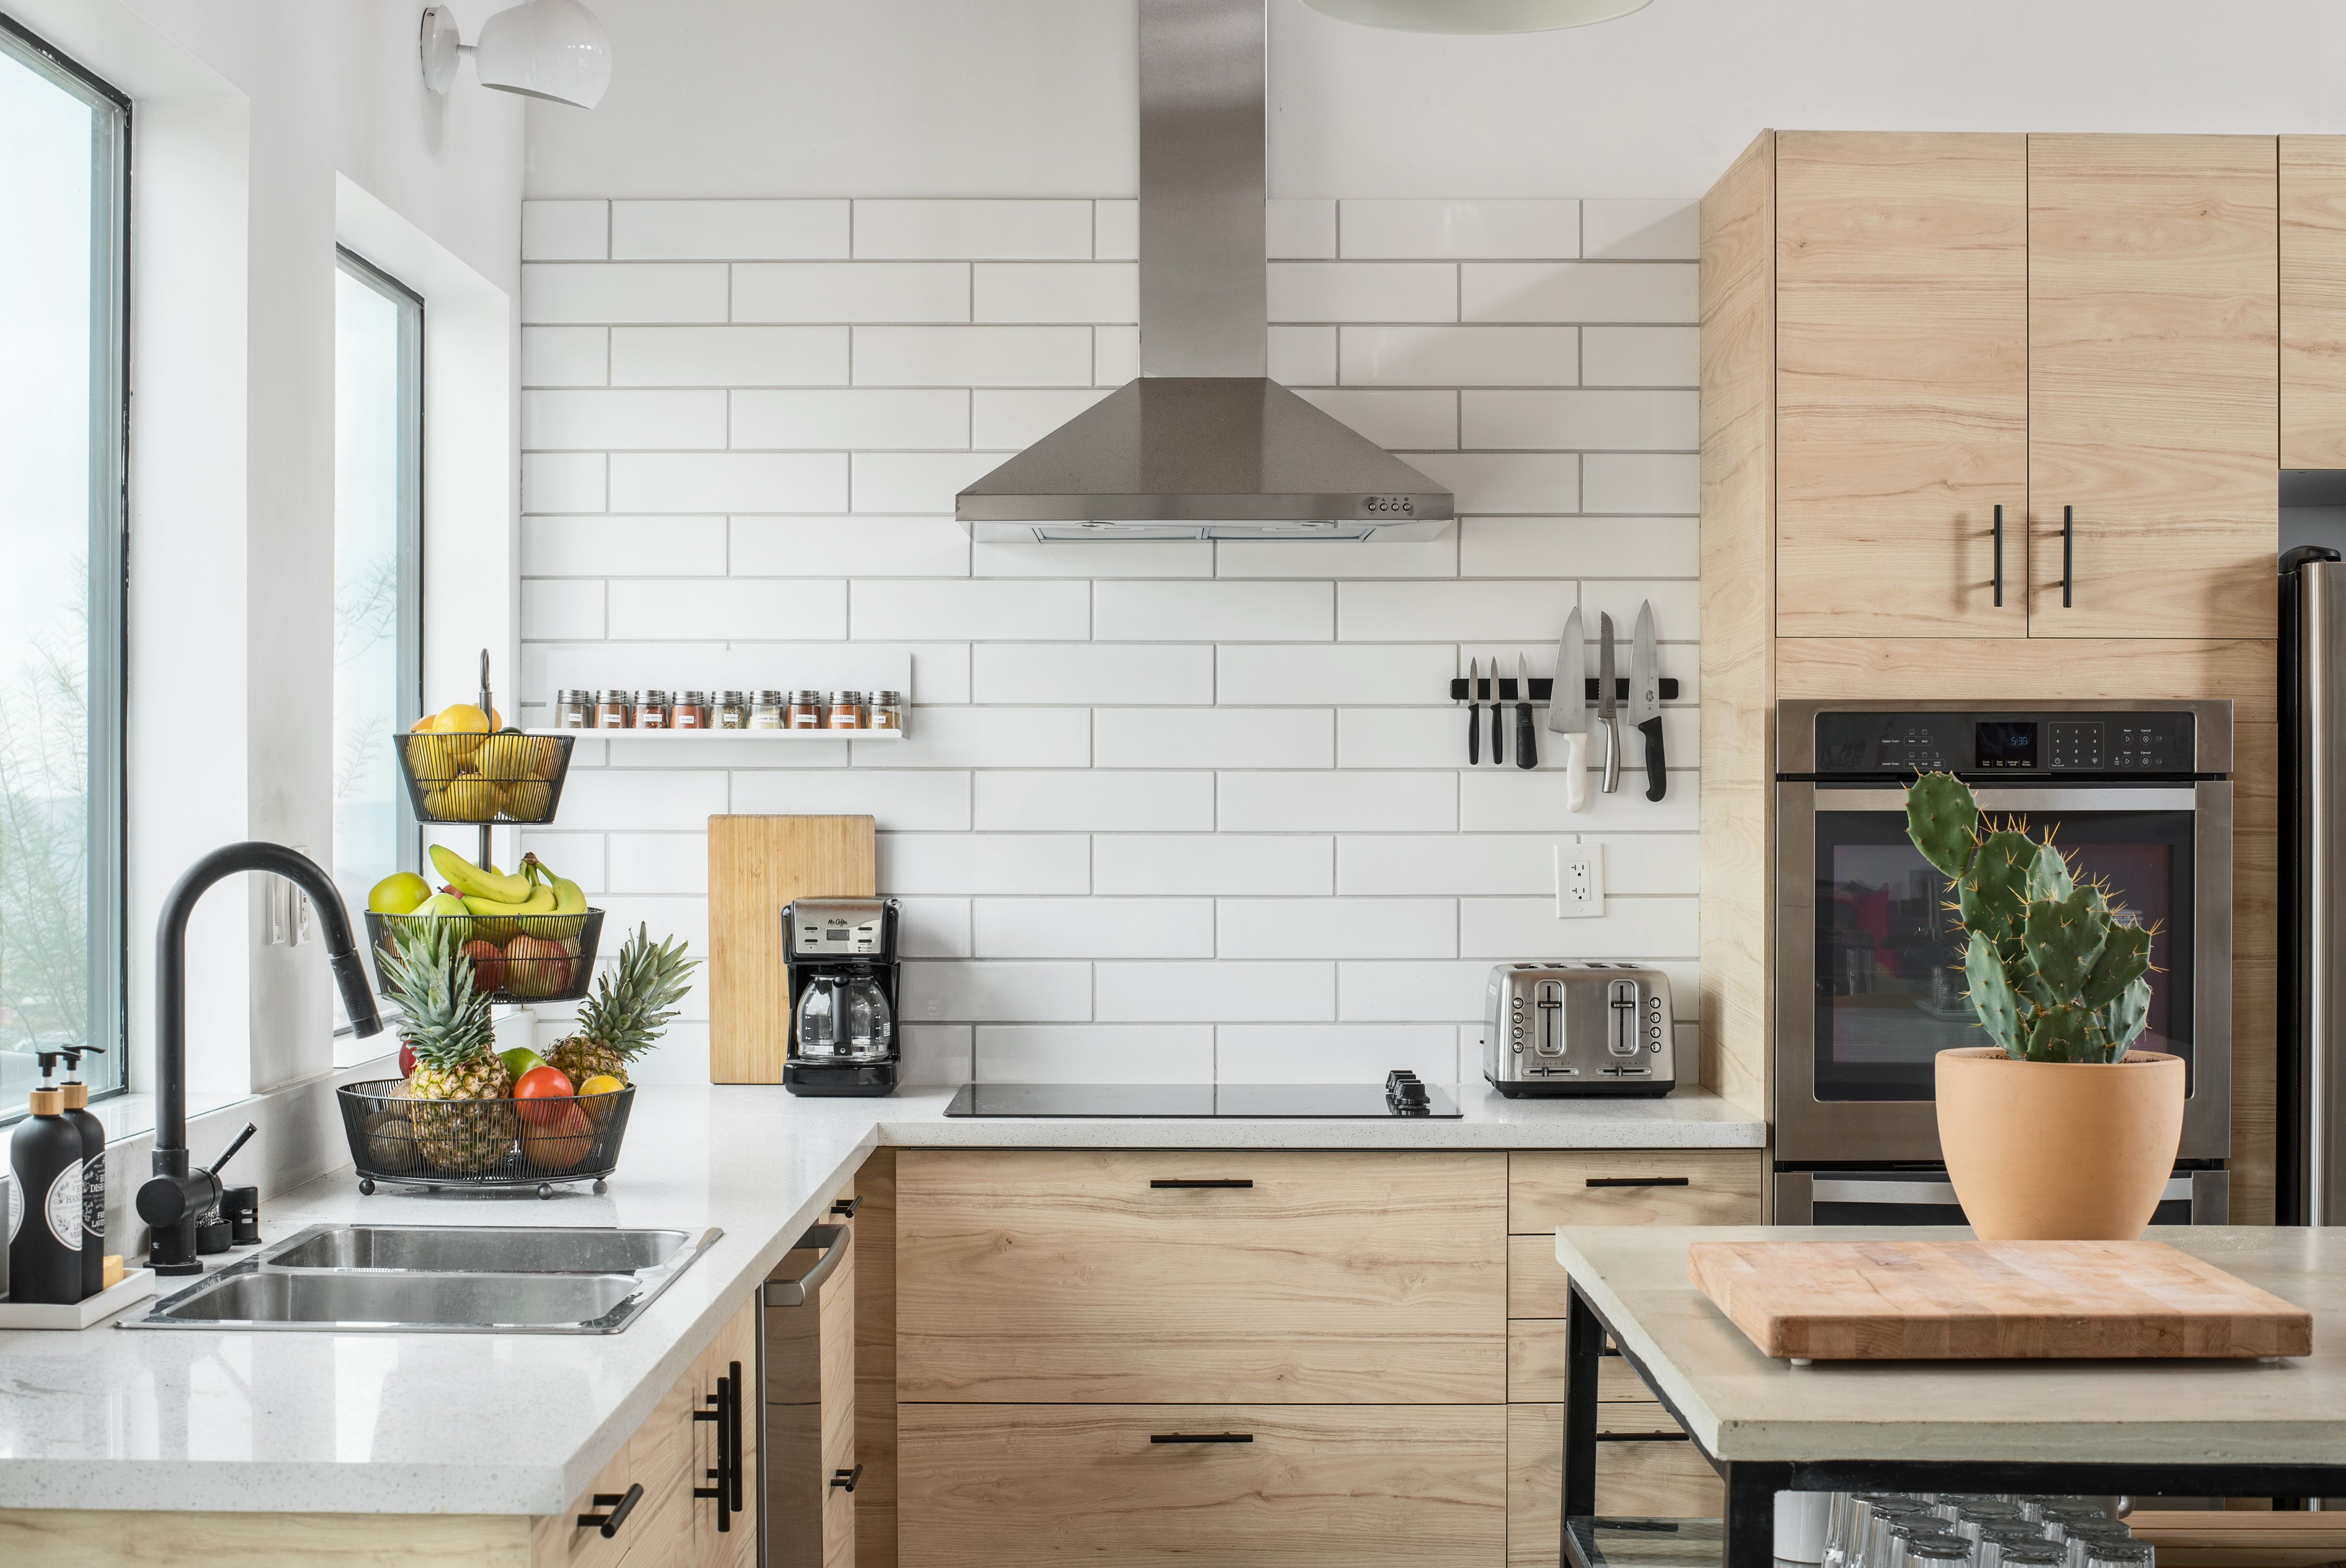 19 Easy Ways To Make Your Ikea Hacks Look Super Professional Hunker In 2020 Composite Countertops Kitchen Cabinets Kitchen Set Cabinet